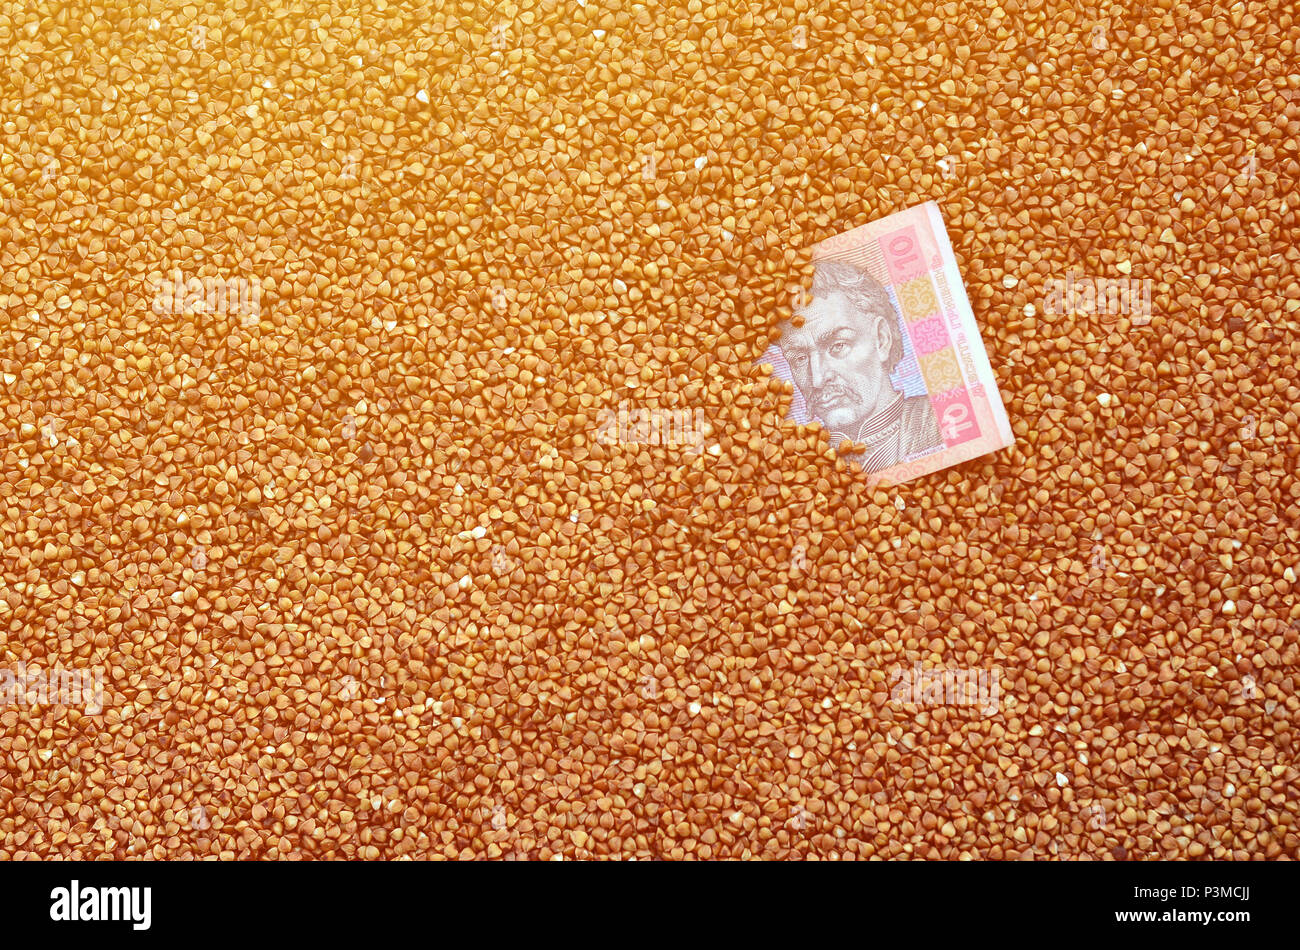 Background texture of a large pile of buckwheat, among which one can see a bill of one Ukrainian hryvnia. The concept of increasing prices for cereals - Stock Image